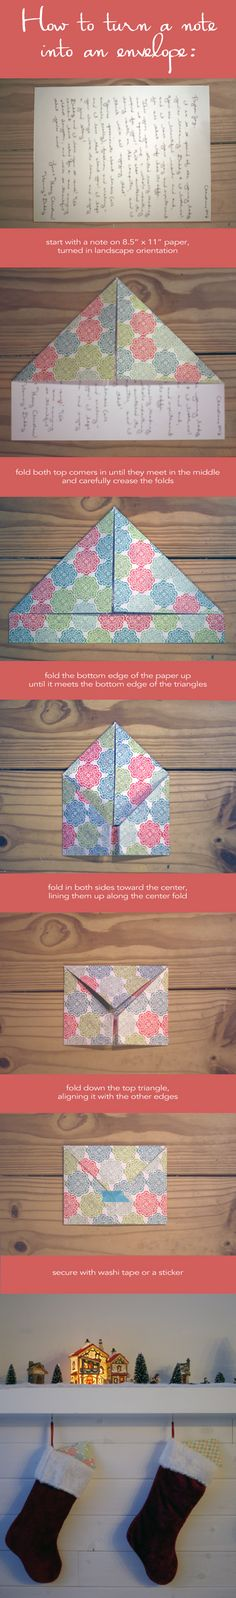 DIY: fold a note into an envelope!